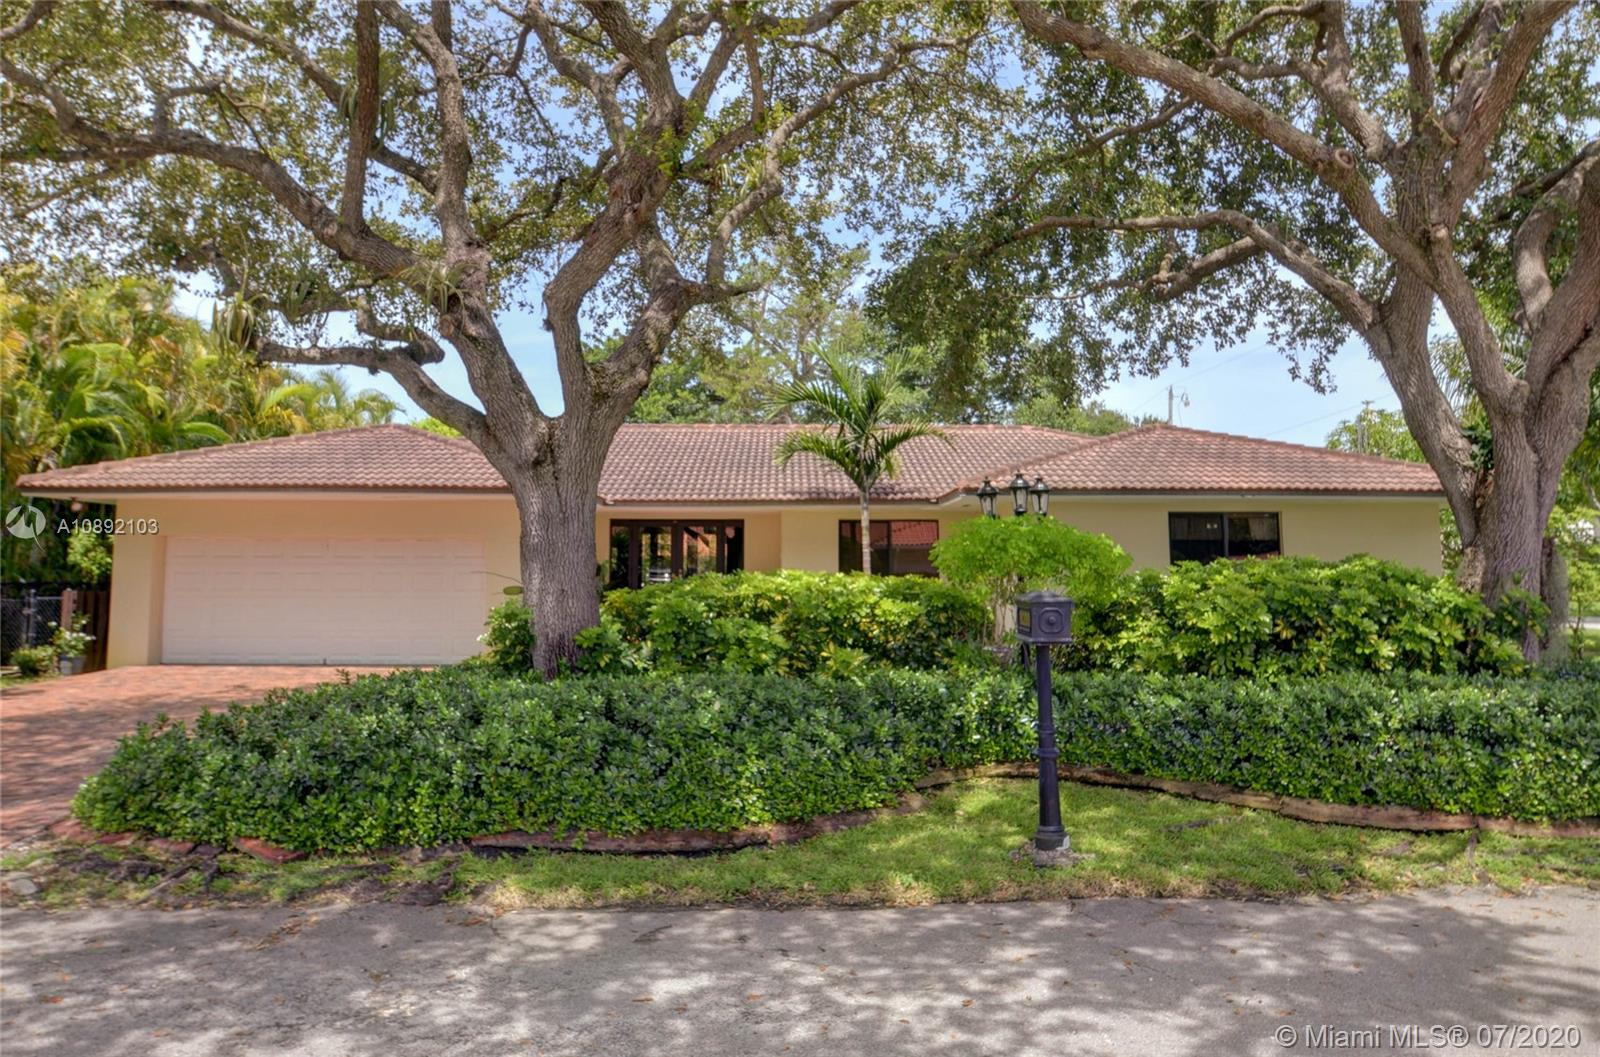 This spectacular 4,100 sq ft home is situated on a cul-de-sac on a stunning 13,450 SF CORNER lot in the heart of South Miami! Front doors open to a lovely foyer, formal & informal living room boasting 4 bed/3bath with the open living plan overlooking a lushly landscaped yard w/ a variety of fruit trees and a 100 yr old Banyan tree. Yard is lined with a gorgeous 100 year old limestone wall.  Features include huge kitchen, gas range, w/ all new Samsung appliances, lots of natural lighting, skylight, custom wood ceilings & trim, extra large laundry room, ALL impact windows & doors, well & sprinkler system, transfer switch for generator, gorgeous patio with plenty of room for a pool!   Home is within close proximity to the top schools, walking distance from parks, hospitals and many hot spots!